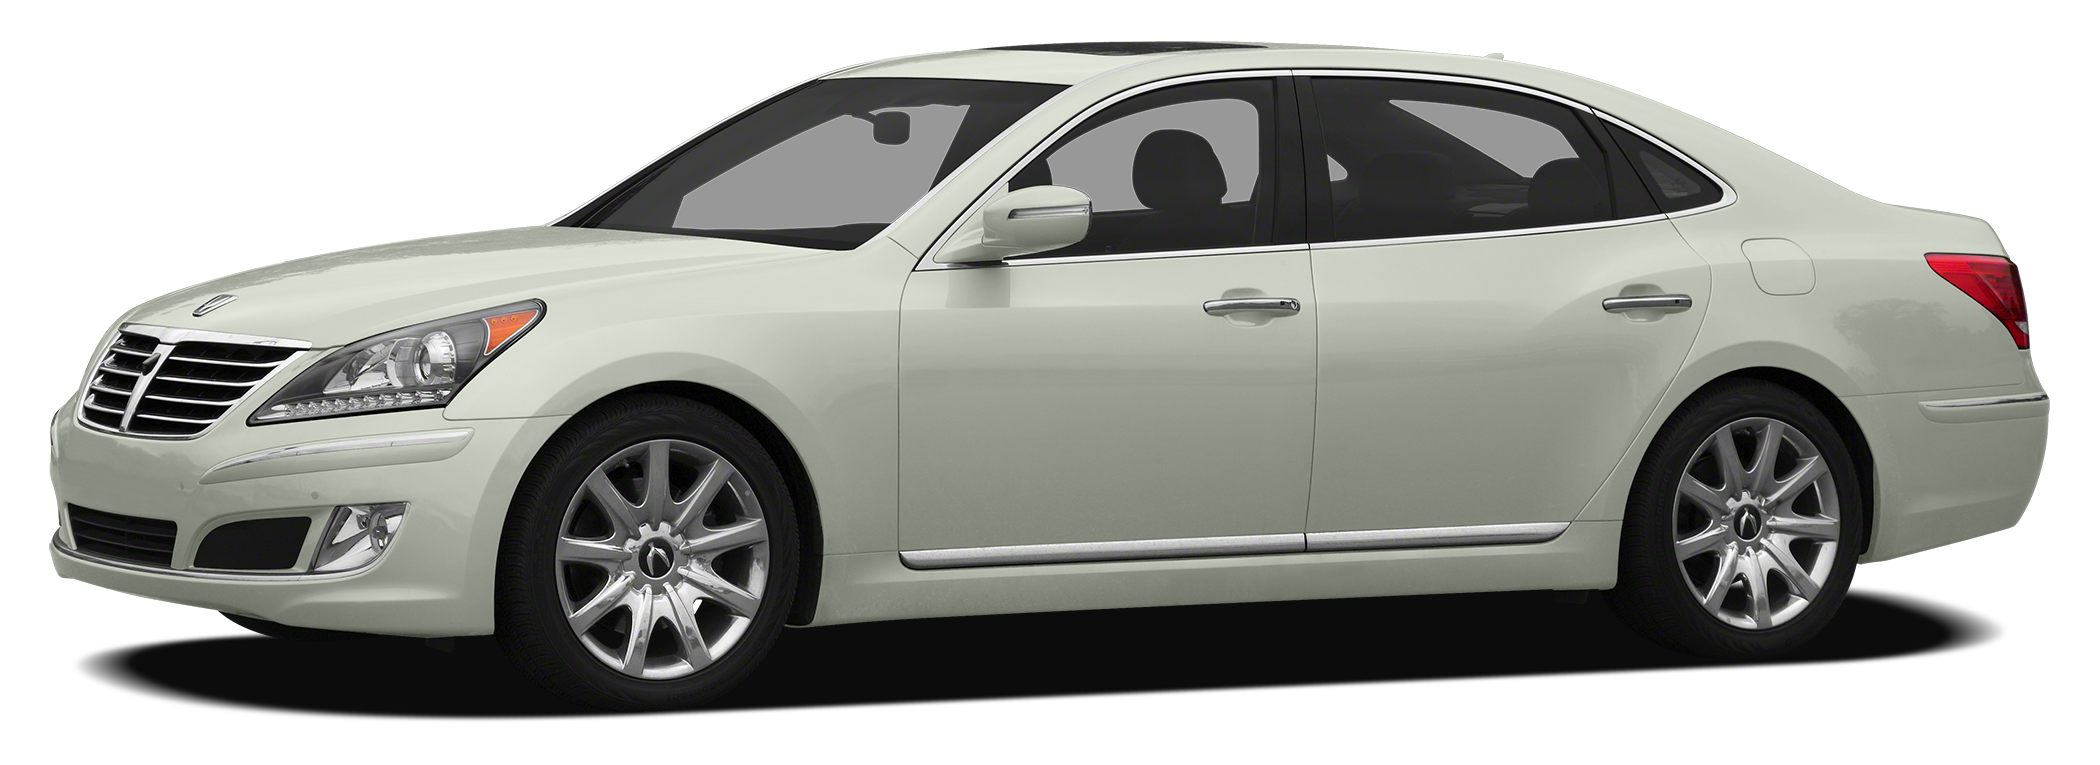 2012 Hyundai Equus Signature Prices do not include additional fees and costs of closing including